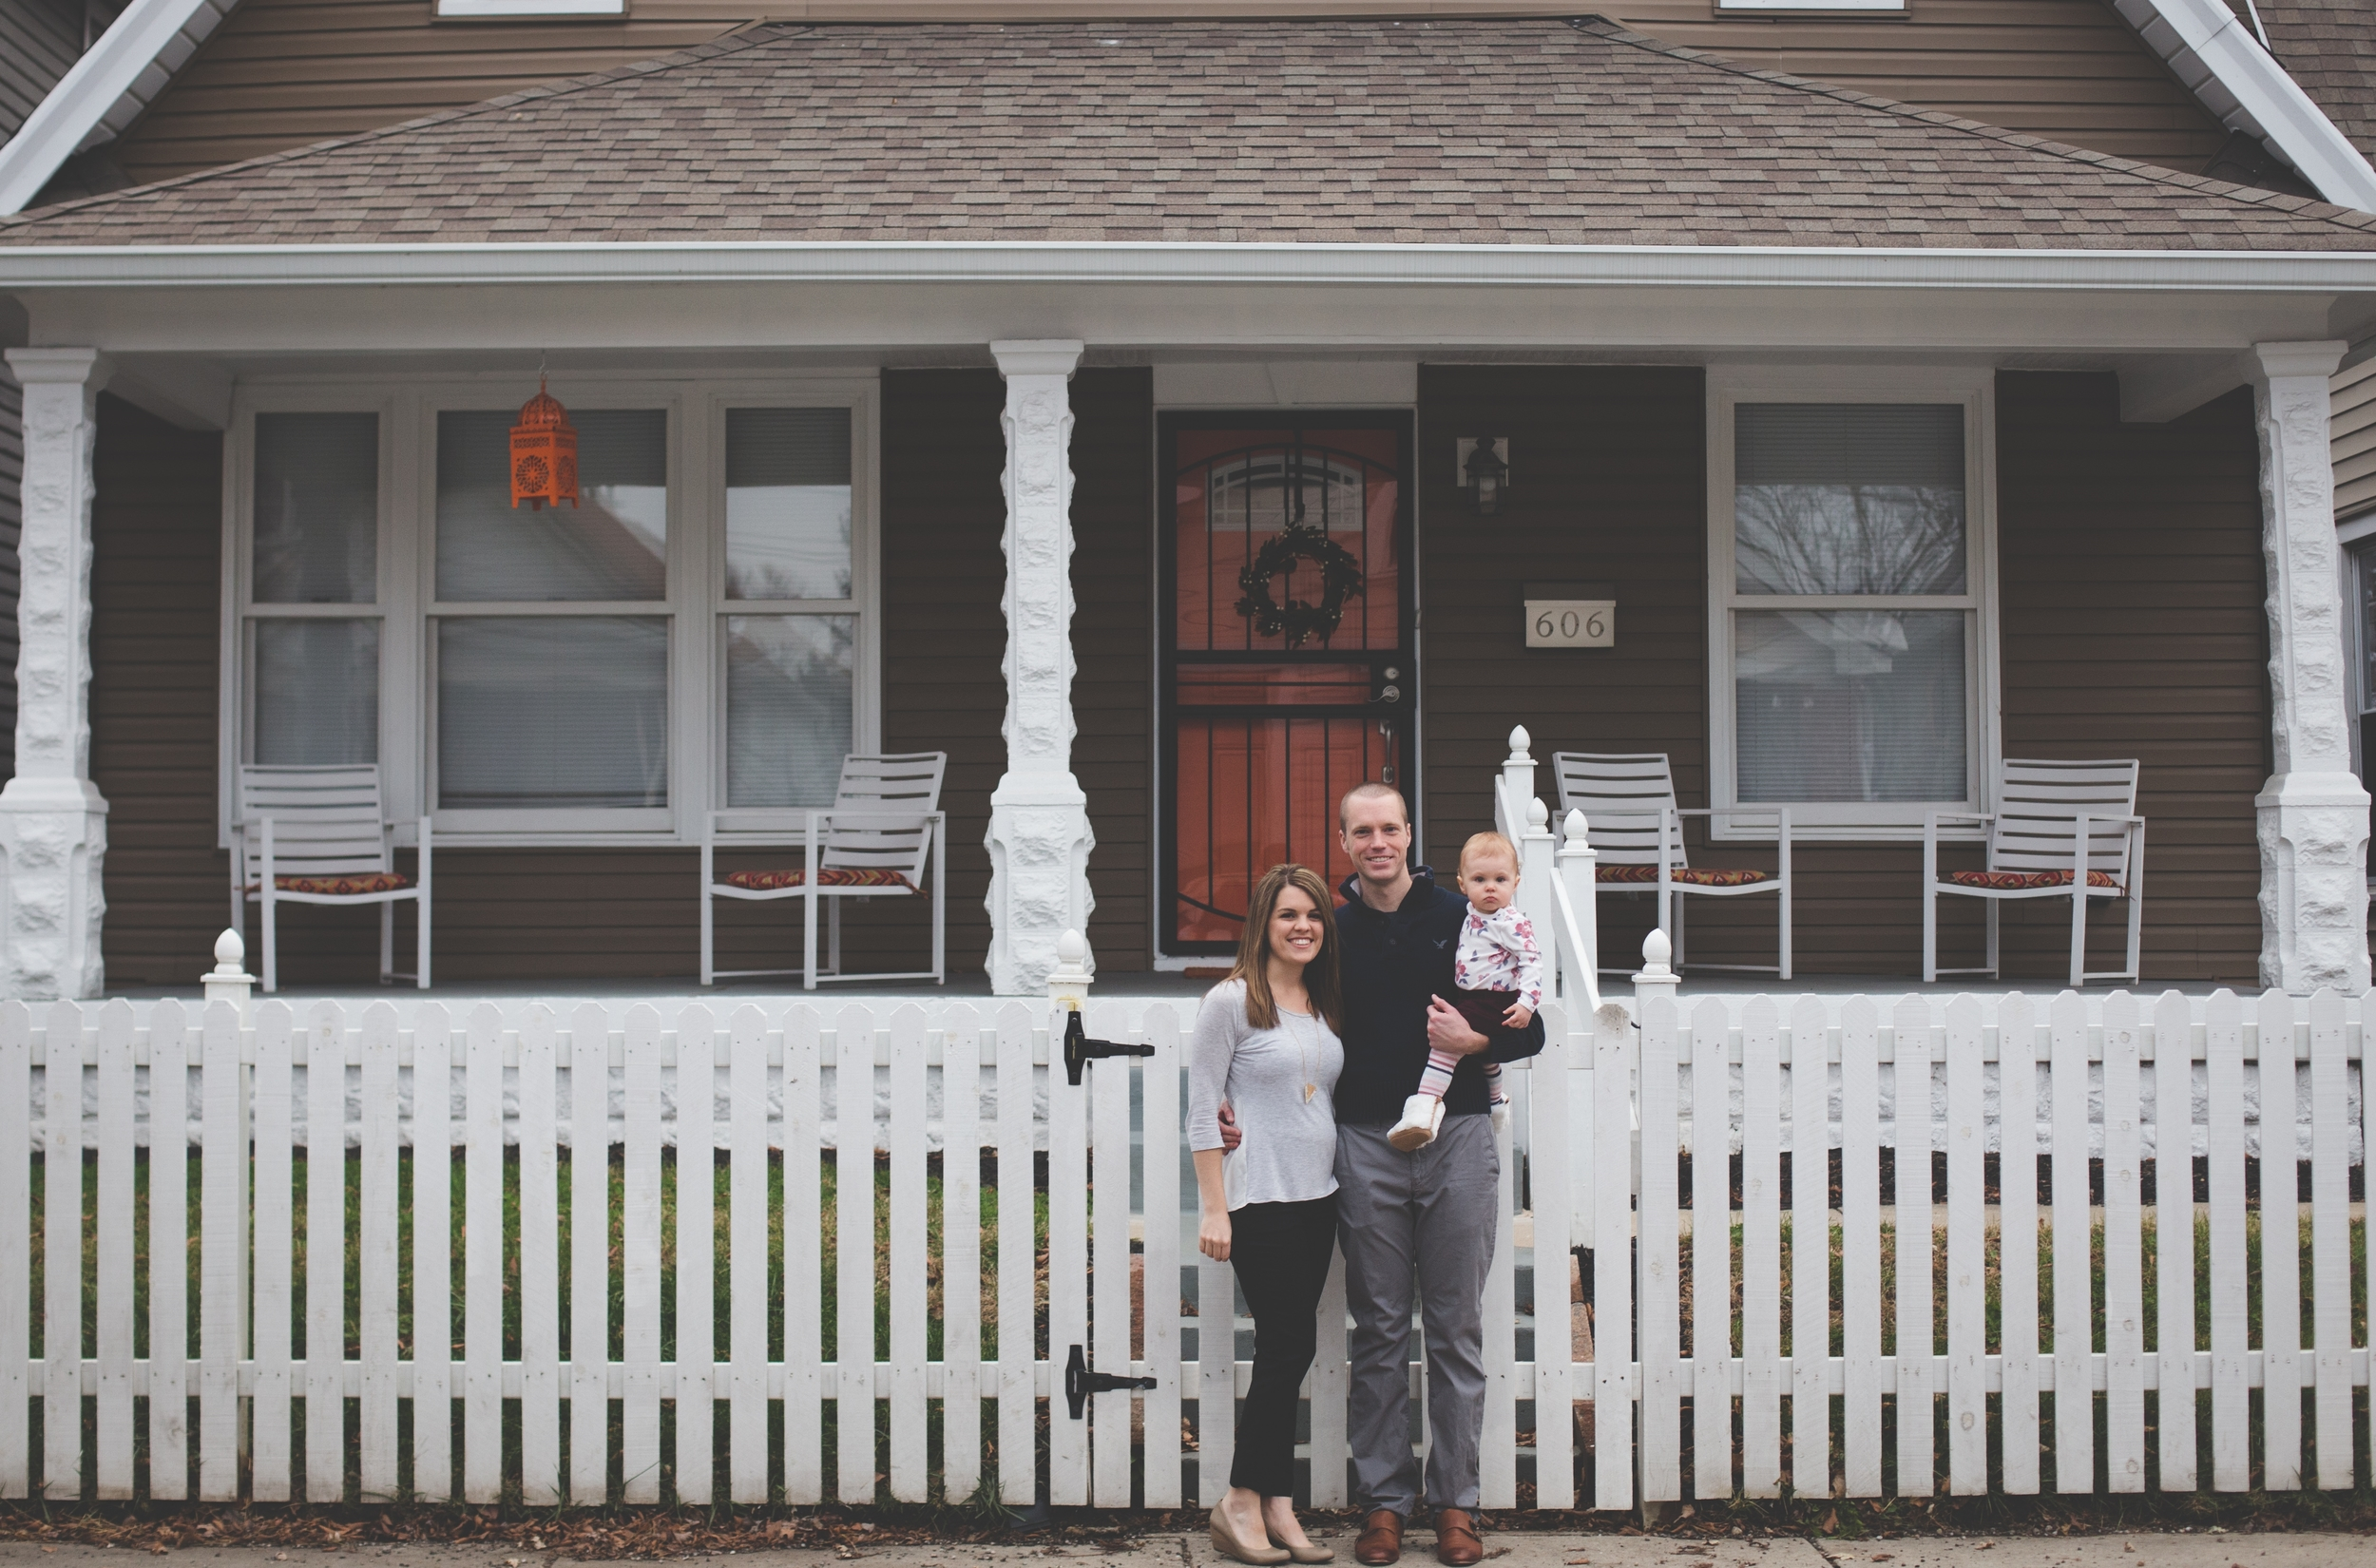 The Ney family in front of their remodeled 1910 bungalow in Bates-Hendricks.   Photo credit:  Addie Bell